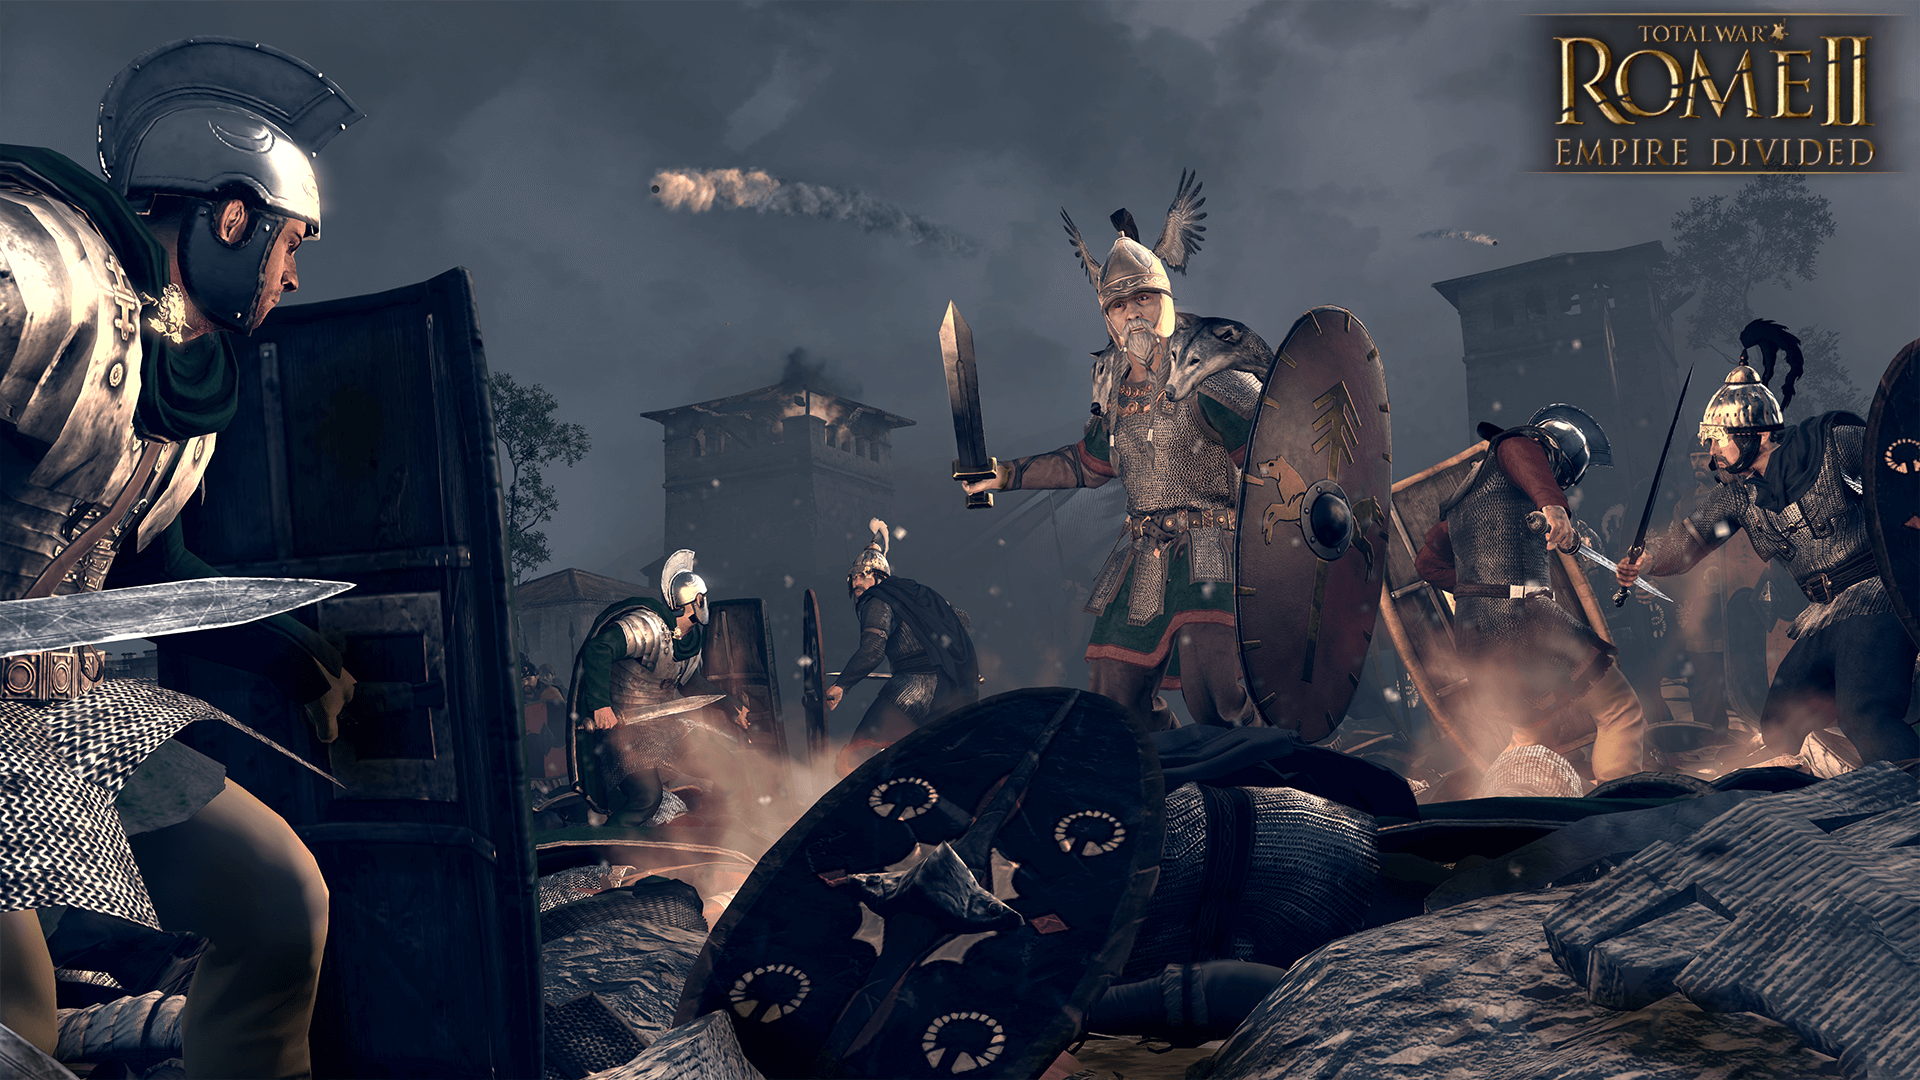 Total War™: ROME II - Empire Divided